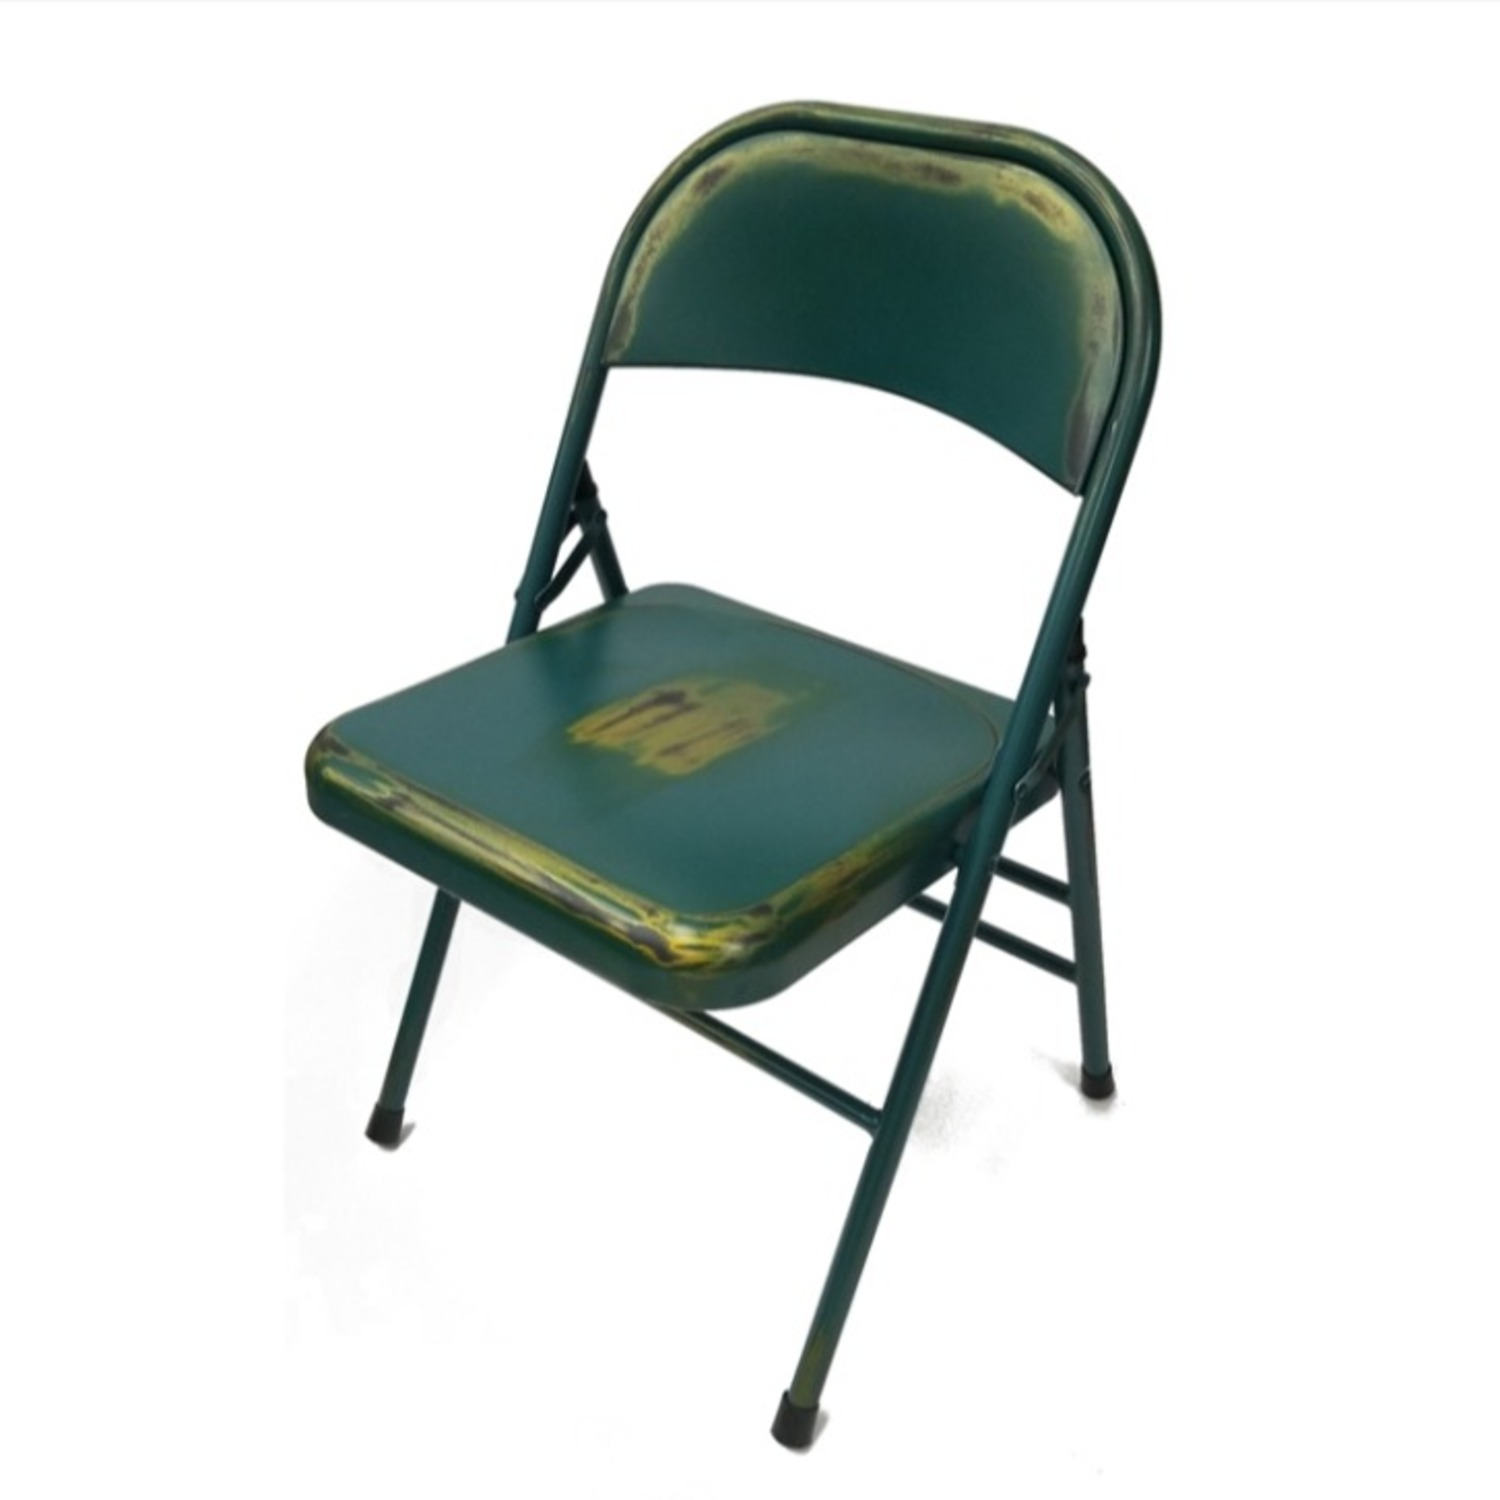 Folding Chair In Turquoise Powder Coated Finish - image-4